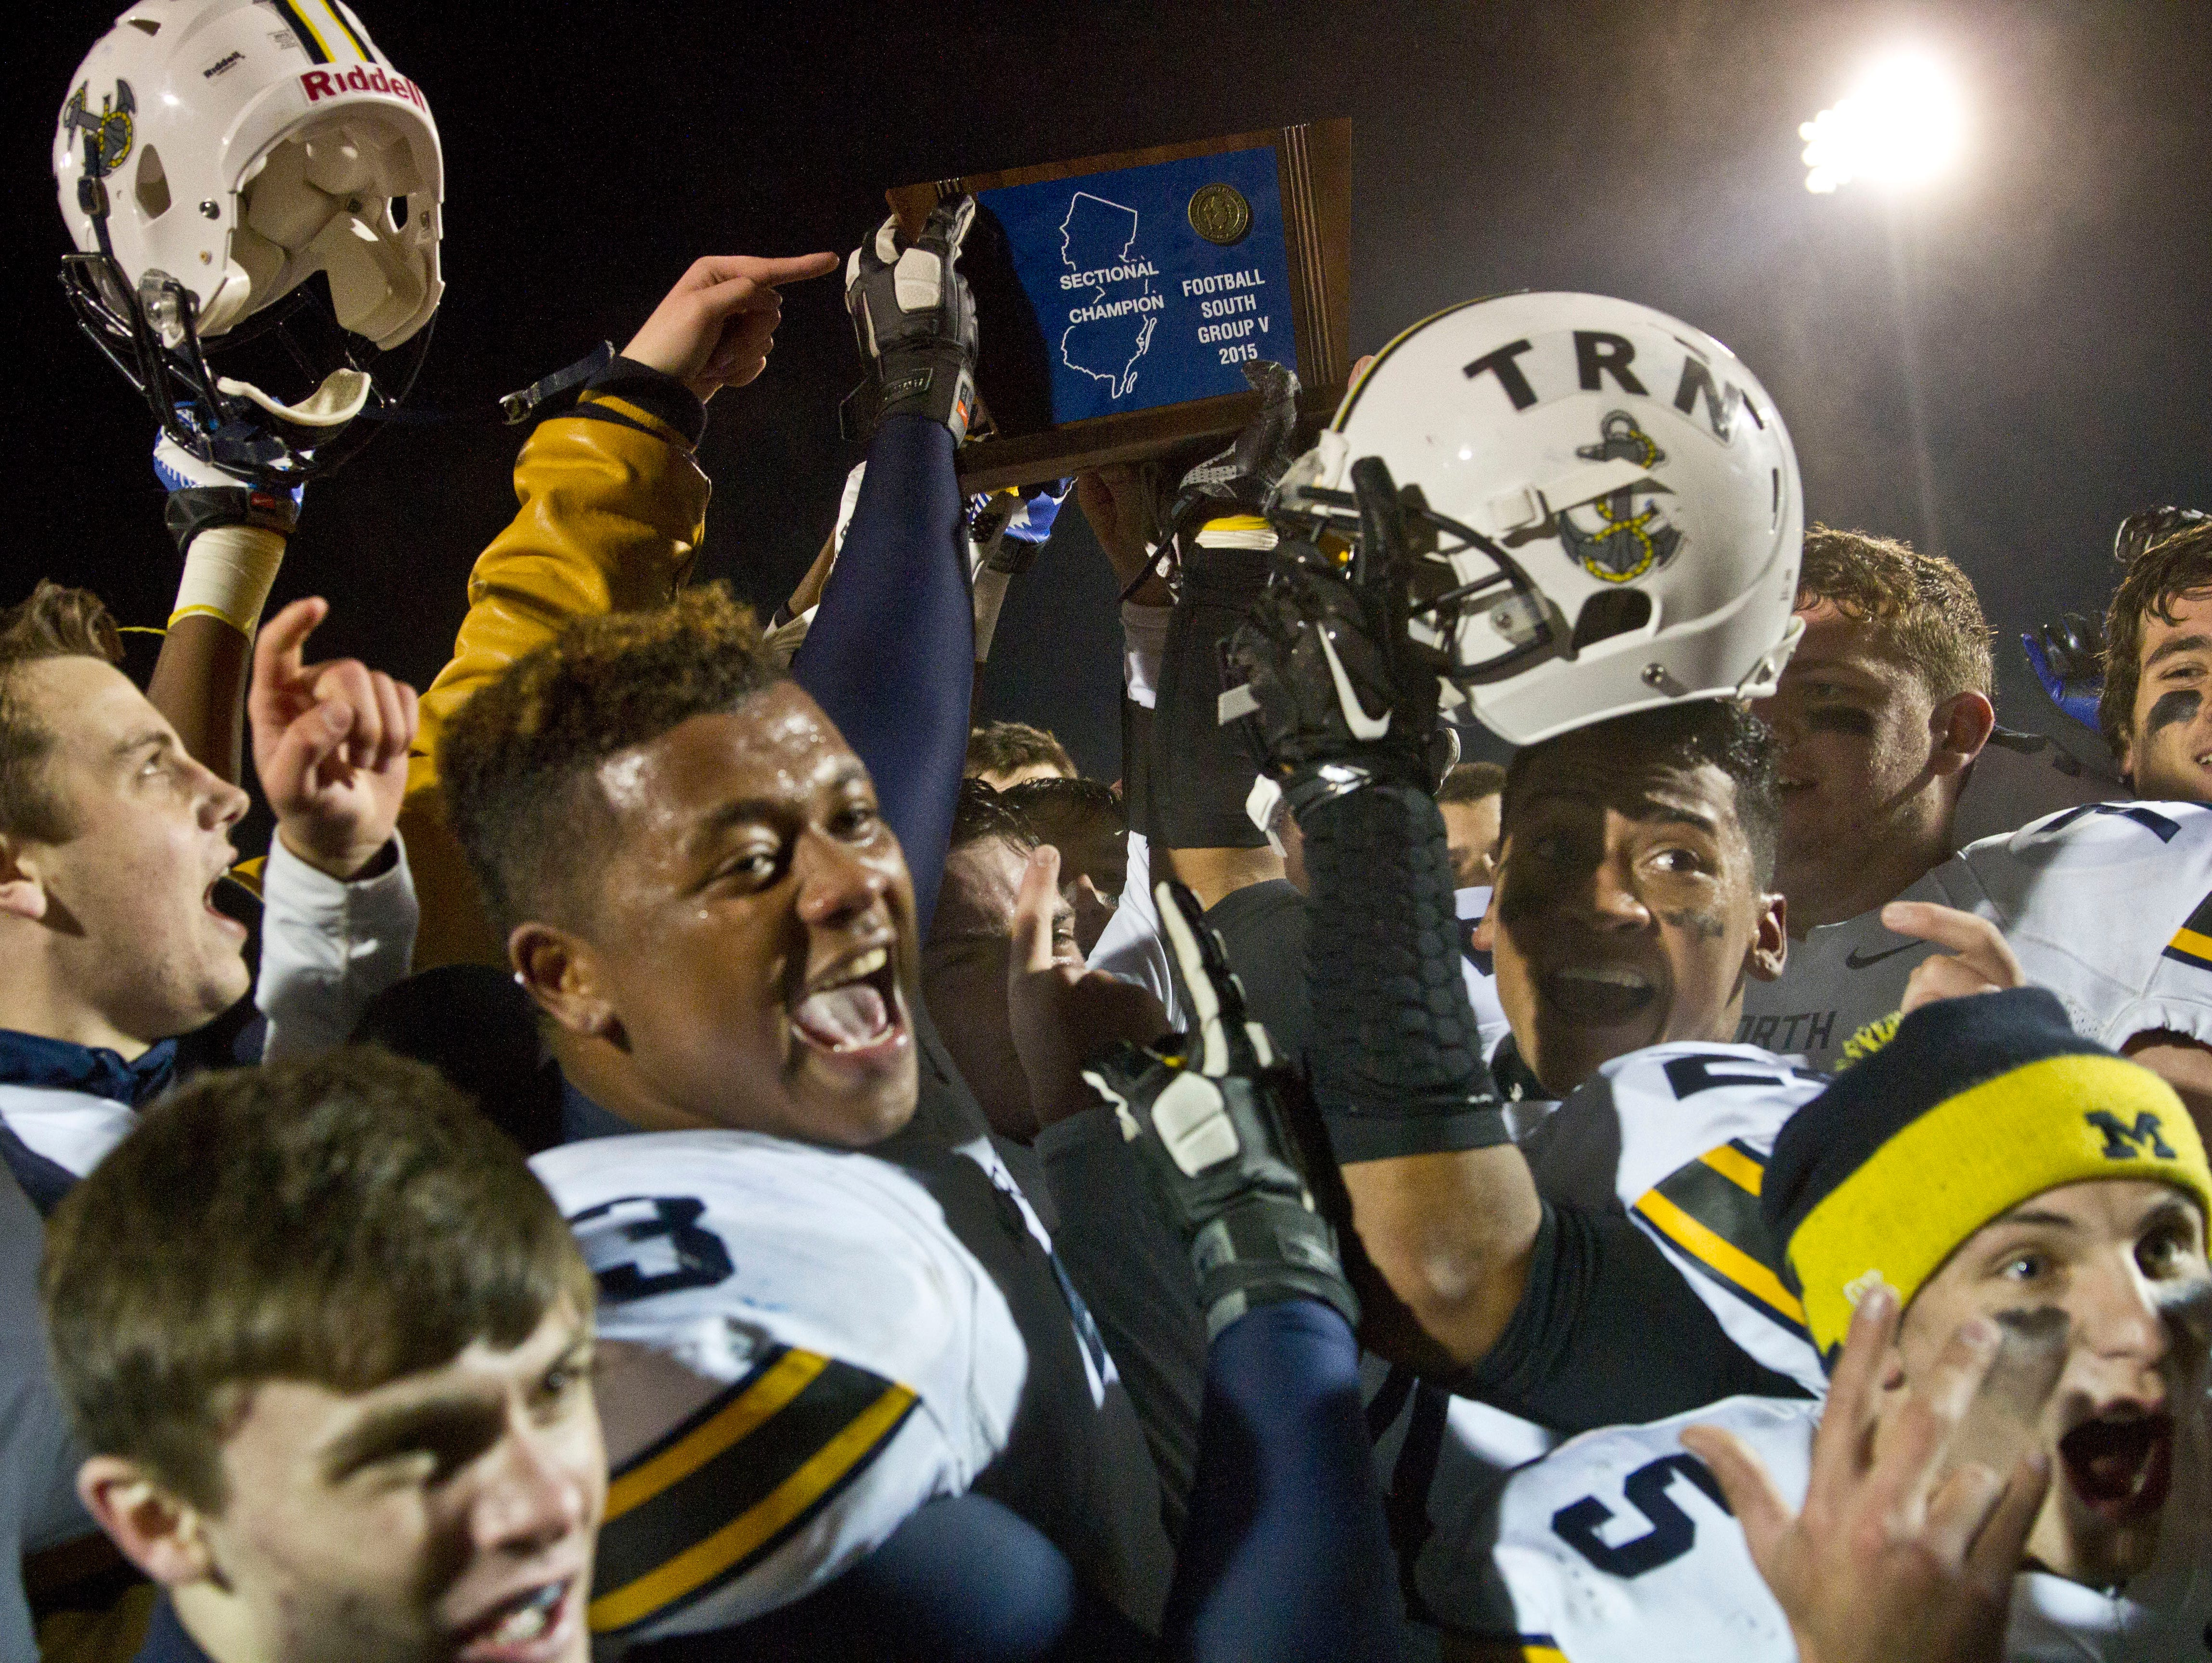 Toms River North celebrates the win. Toms River North defeats Williamstown for the NJSIAA Group V State Championship title. Glassboro, NJ Saturday, December 5, 2015 @dhoodhood